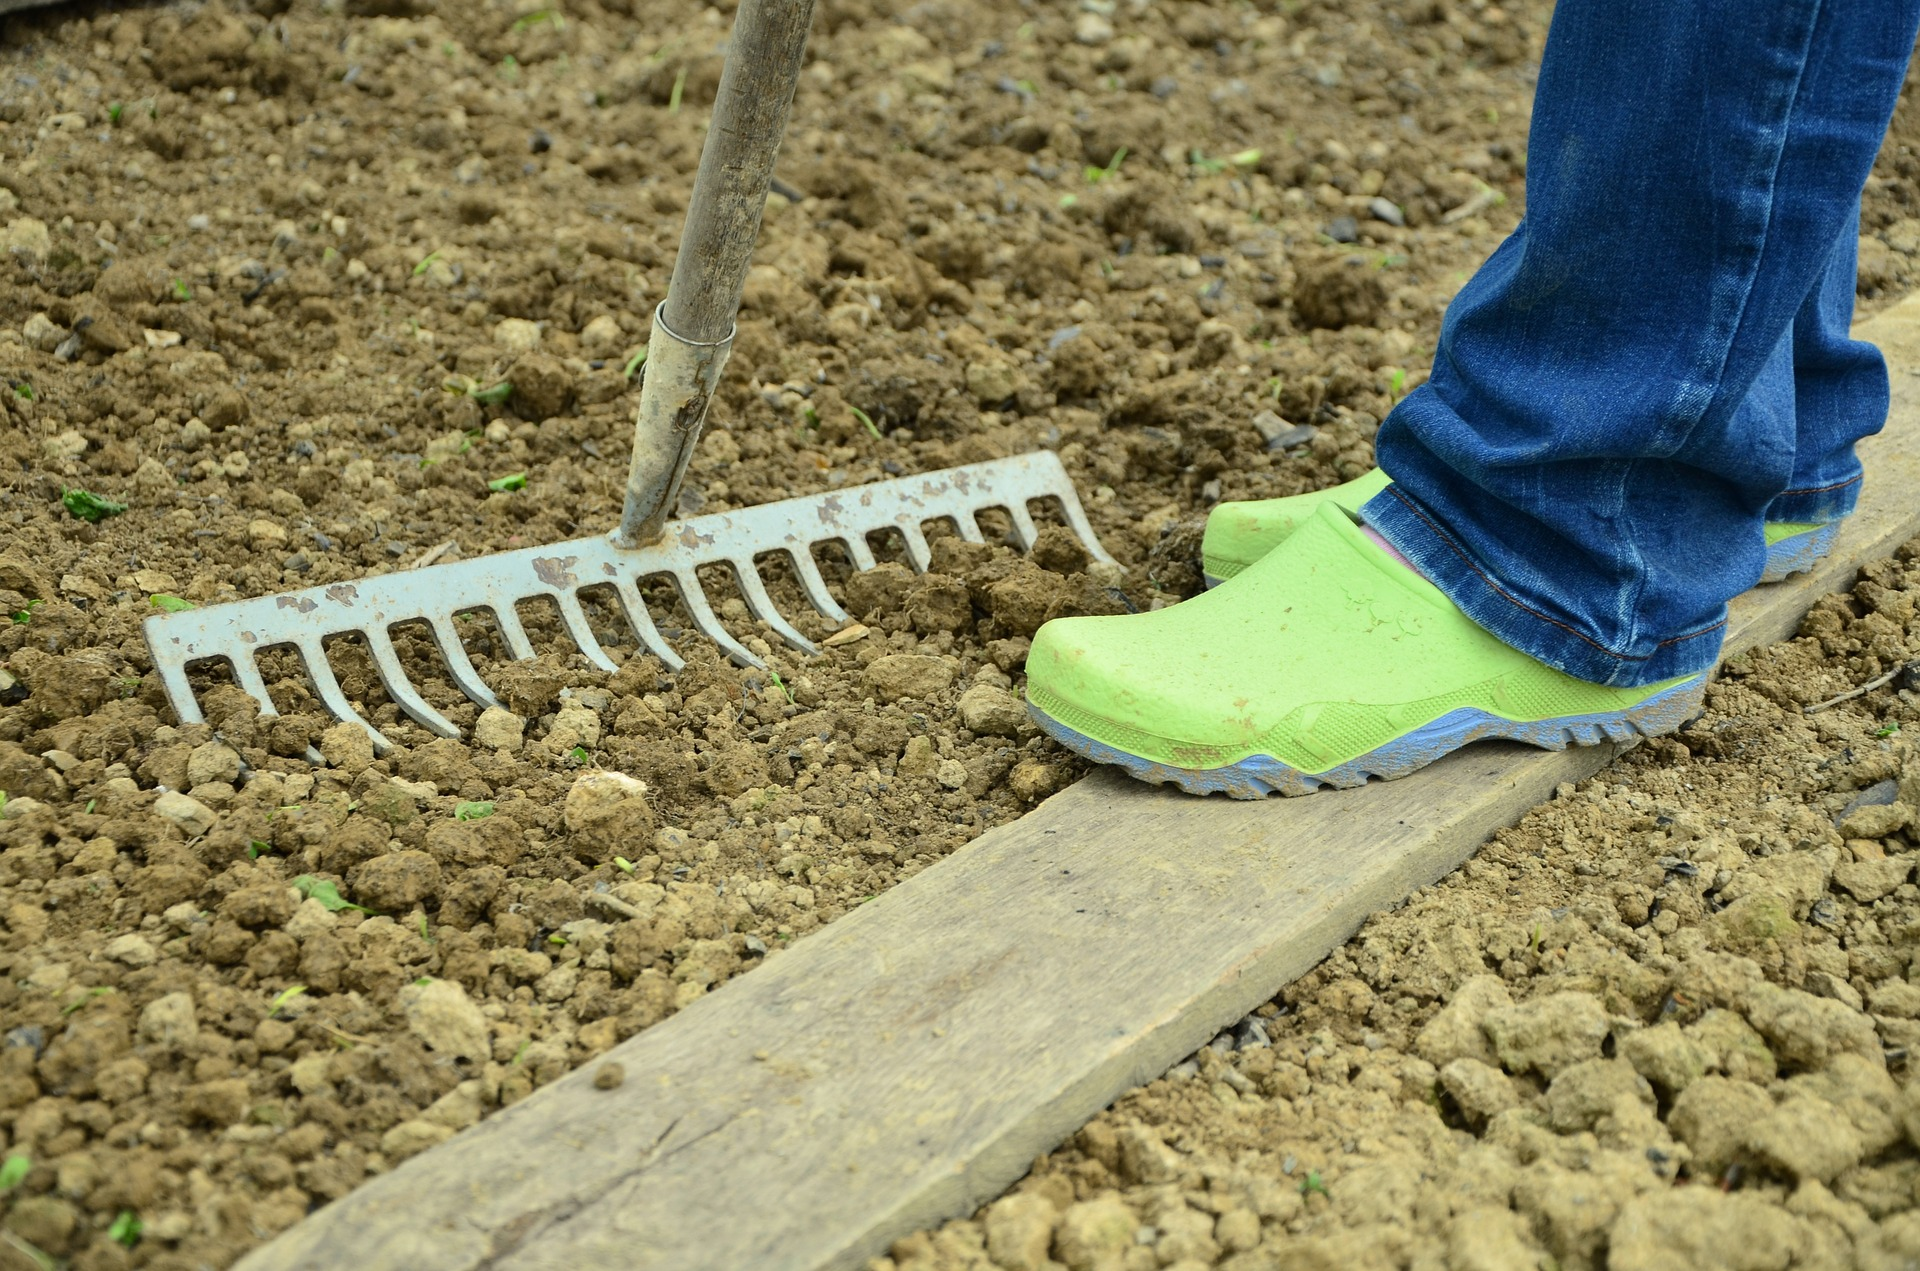 No-dig gardening is trending in UK in 2020